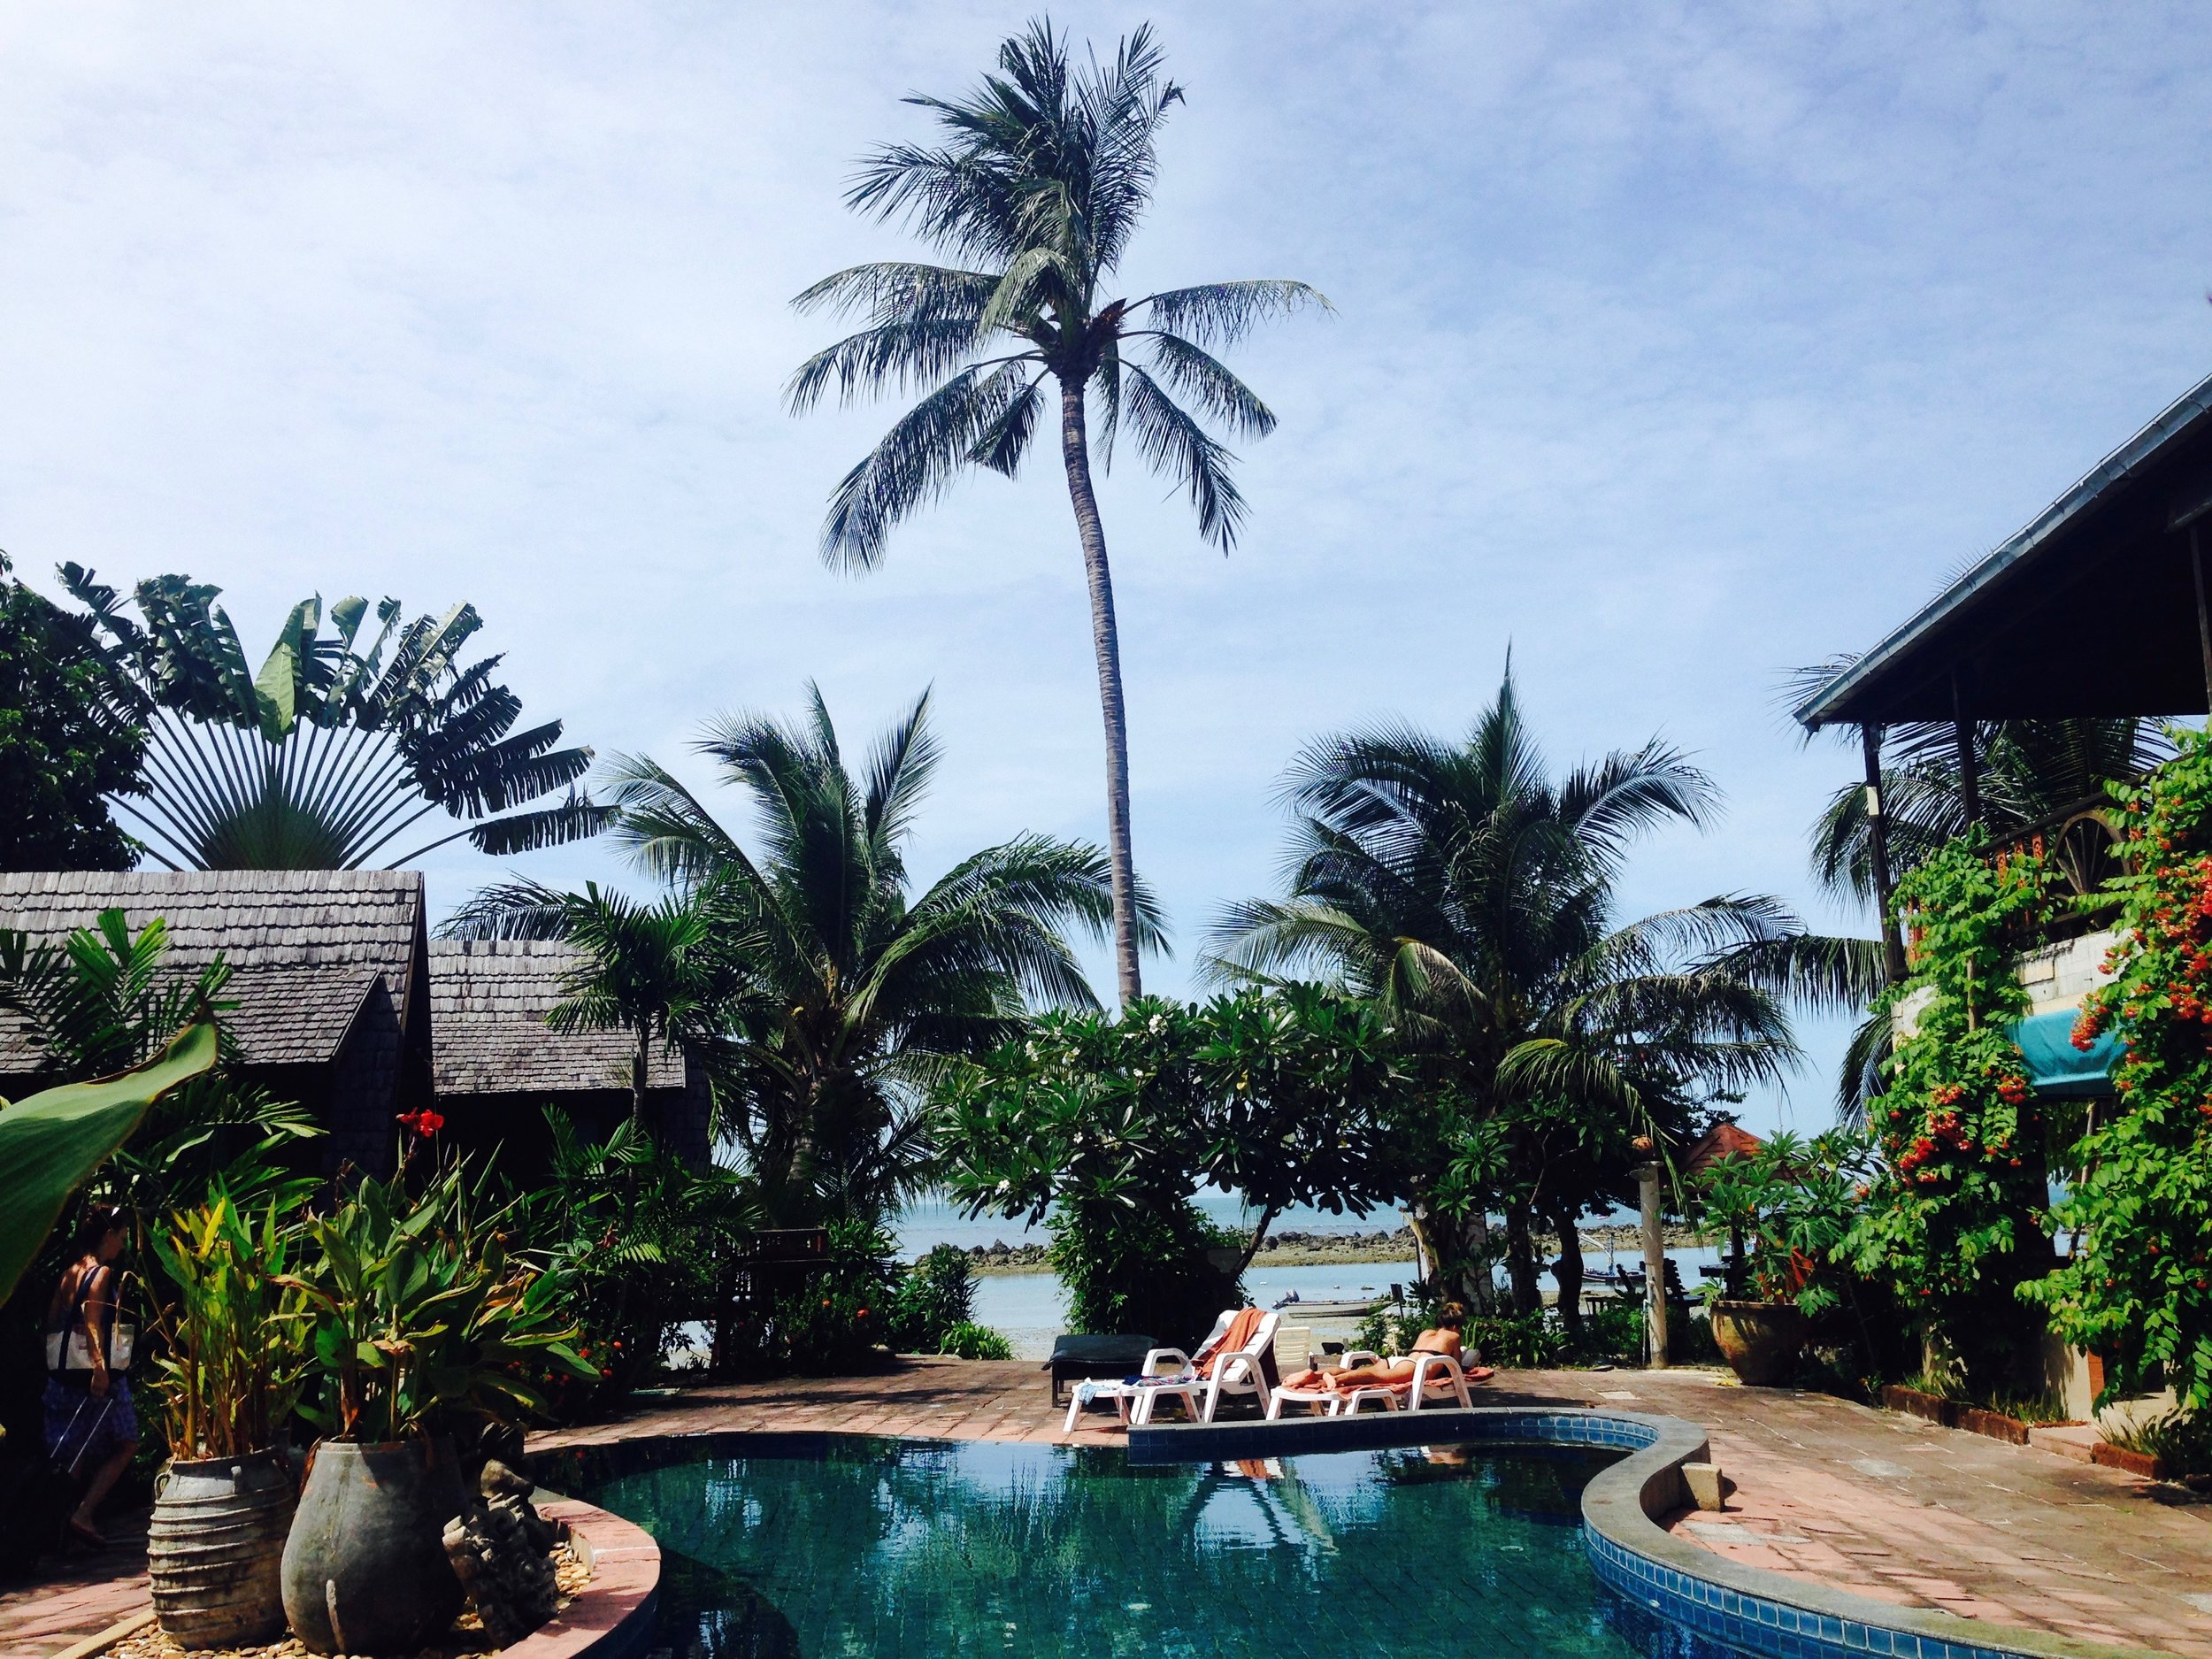 I can see why spas are the perfect place to do a 7 or 7+ day cleanse: paradise all around you